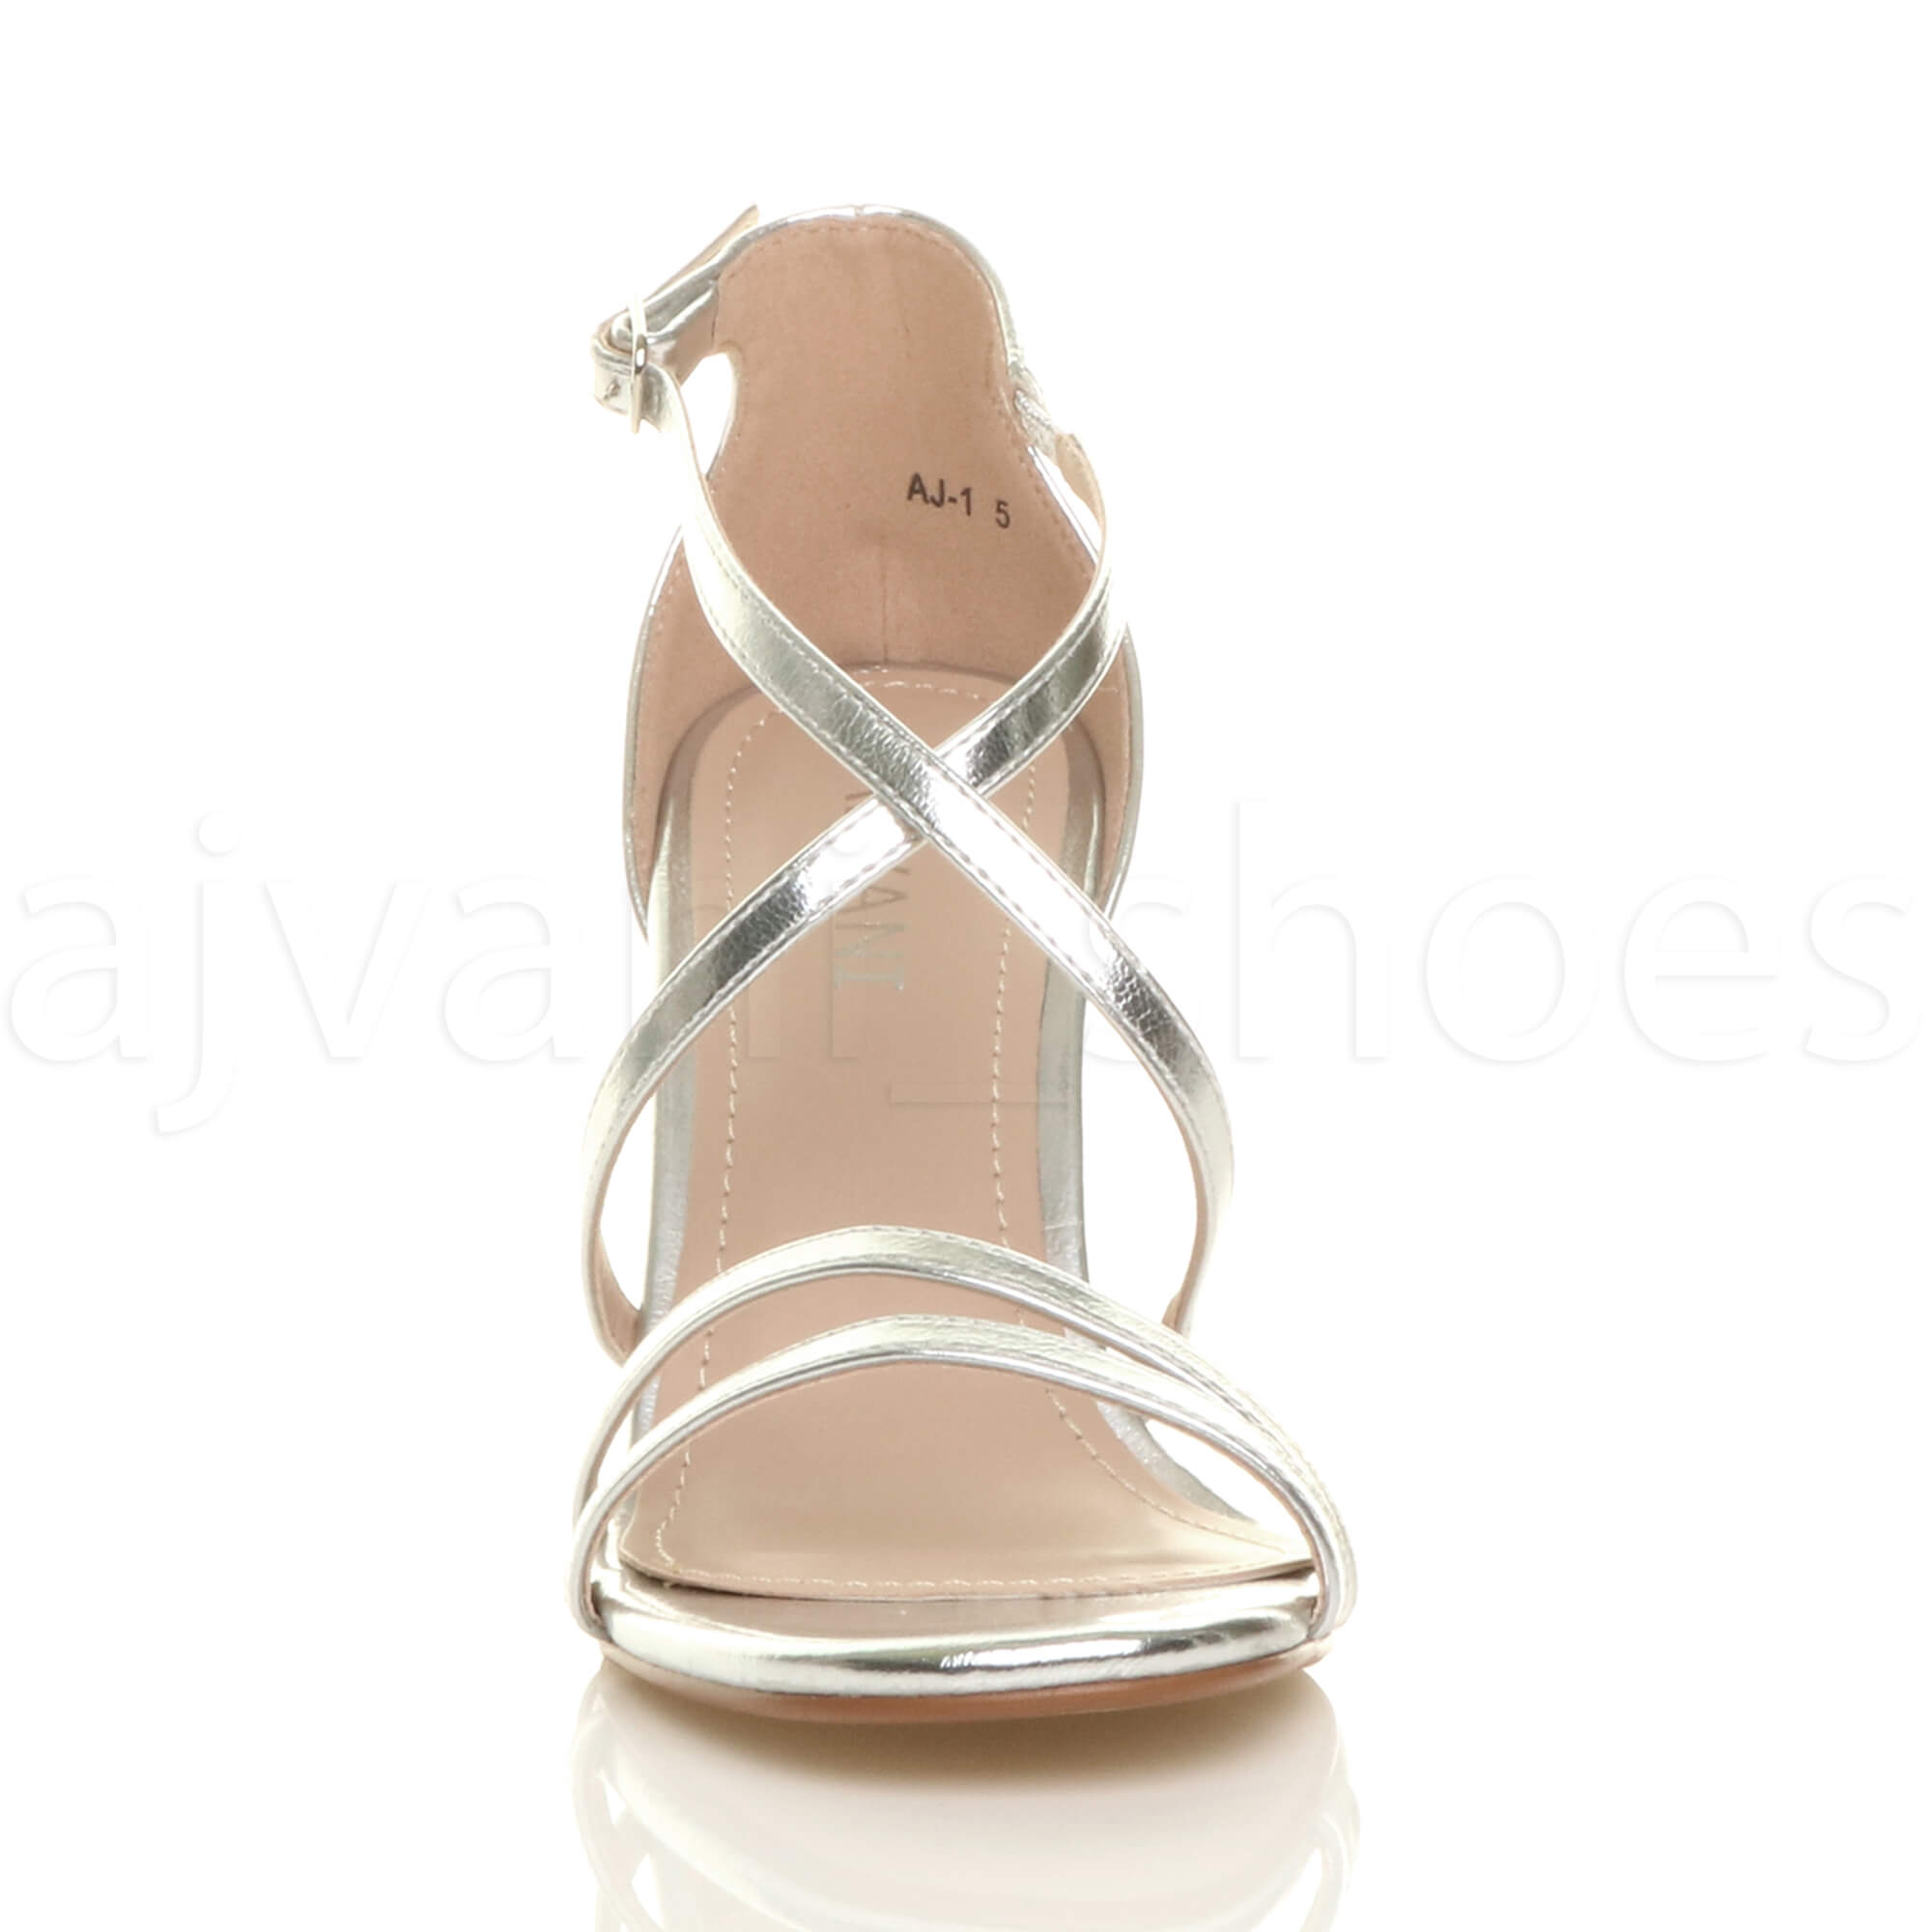 WOMENS-LADIES-MID-HIGH-HEEL-STRAPPY-CROSSOVER-WEDDING-PROM-SANDALS-SHOES-SIZE thumbnail 153